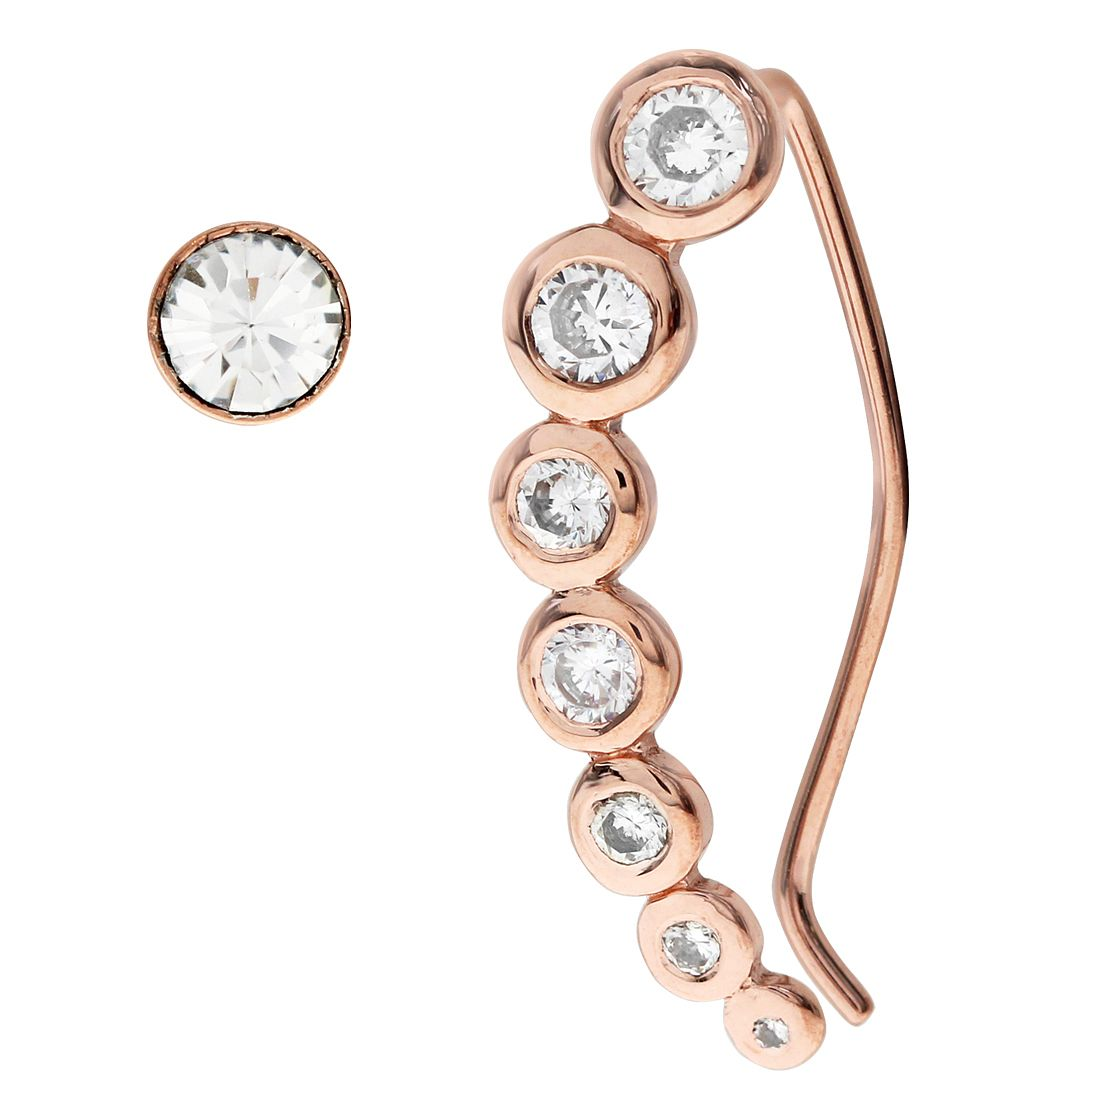 Bodifine Rose Gold Plated Ear Climber & Stud Set - Product number 4300459